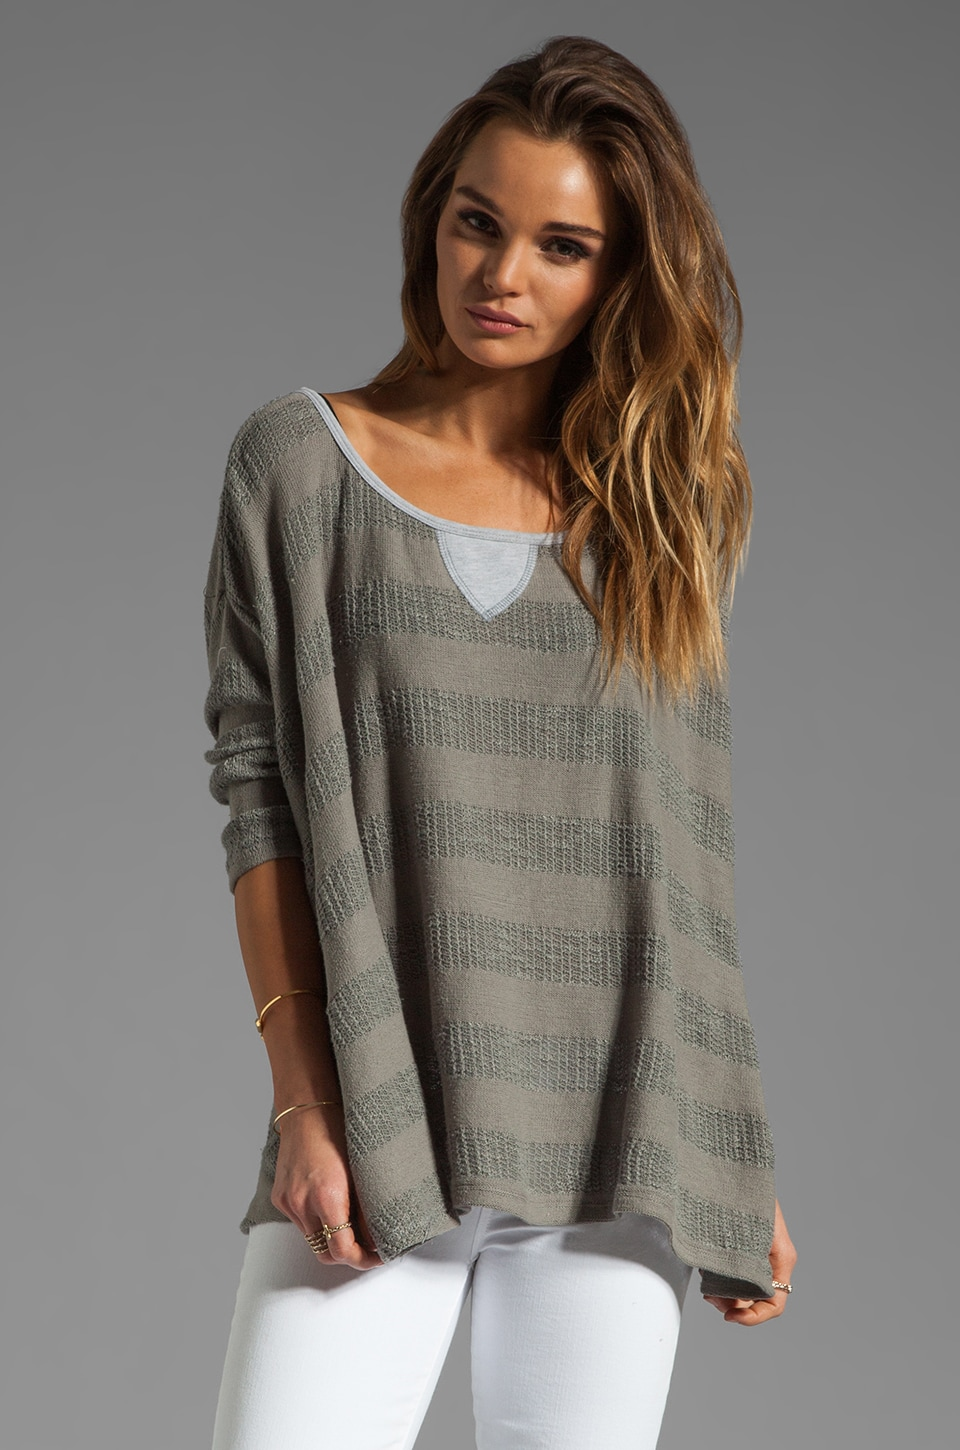 WOODLEIGH Krystal 1/4 Sleeve Top in Grey